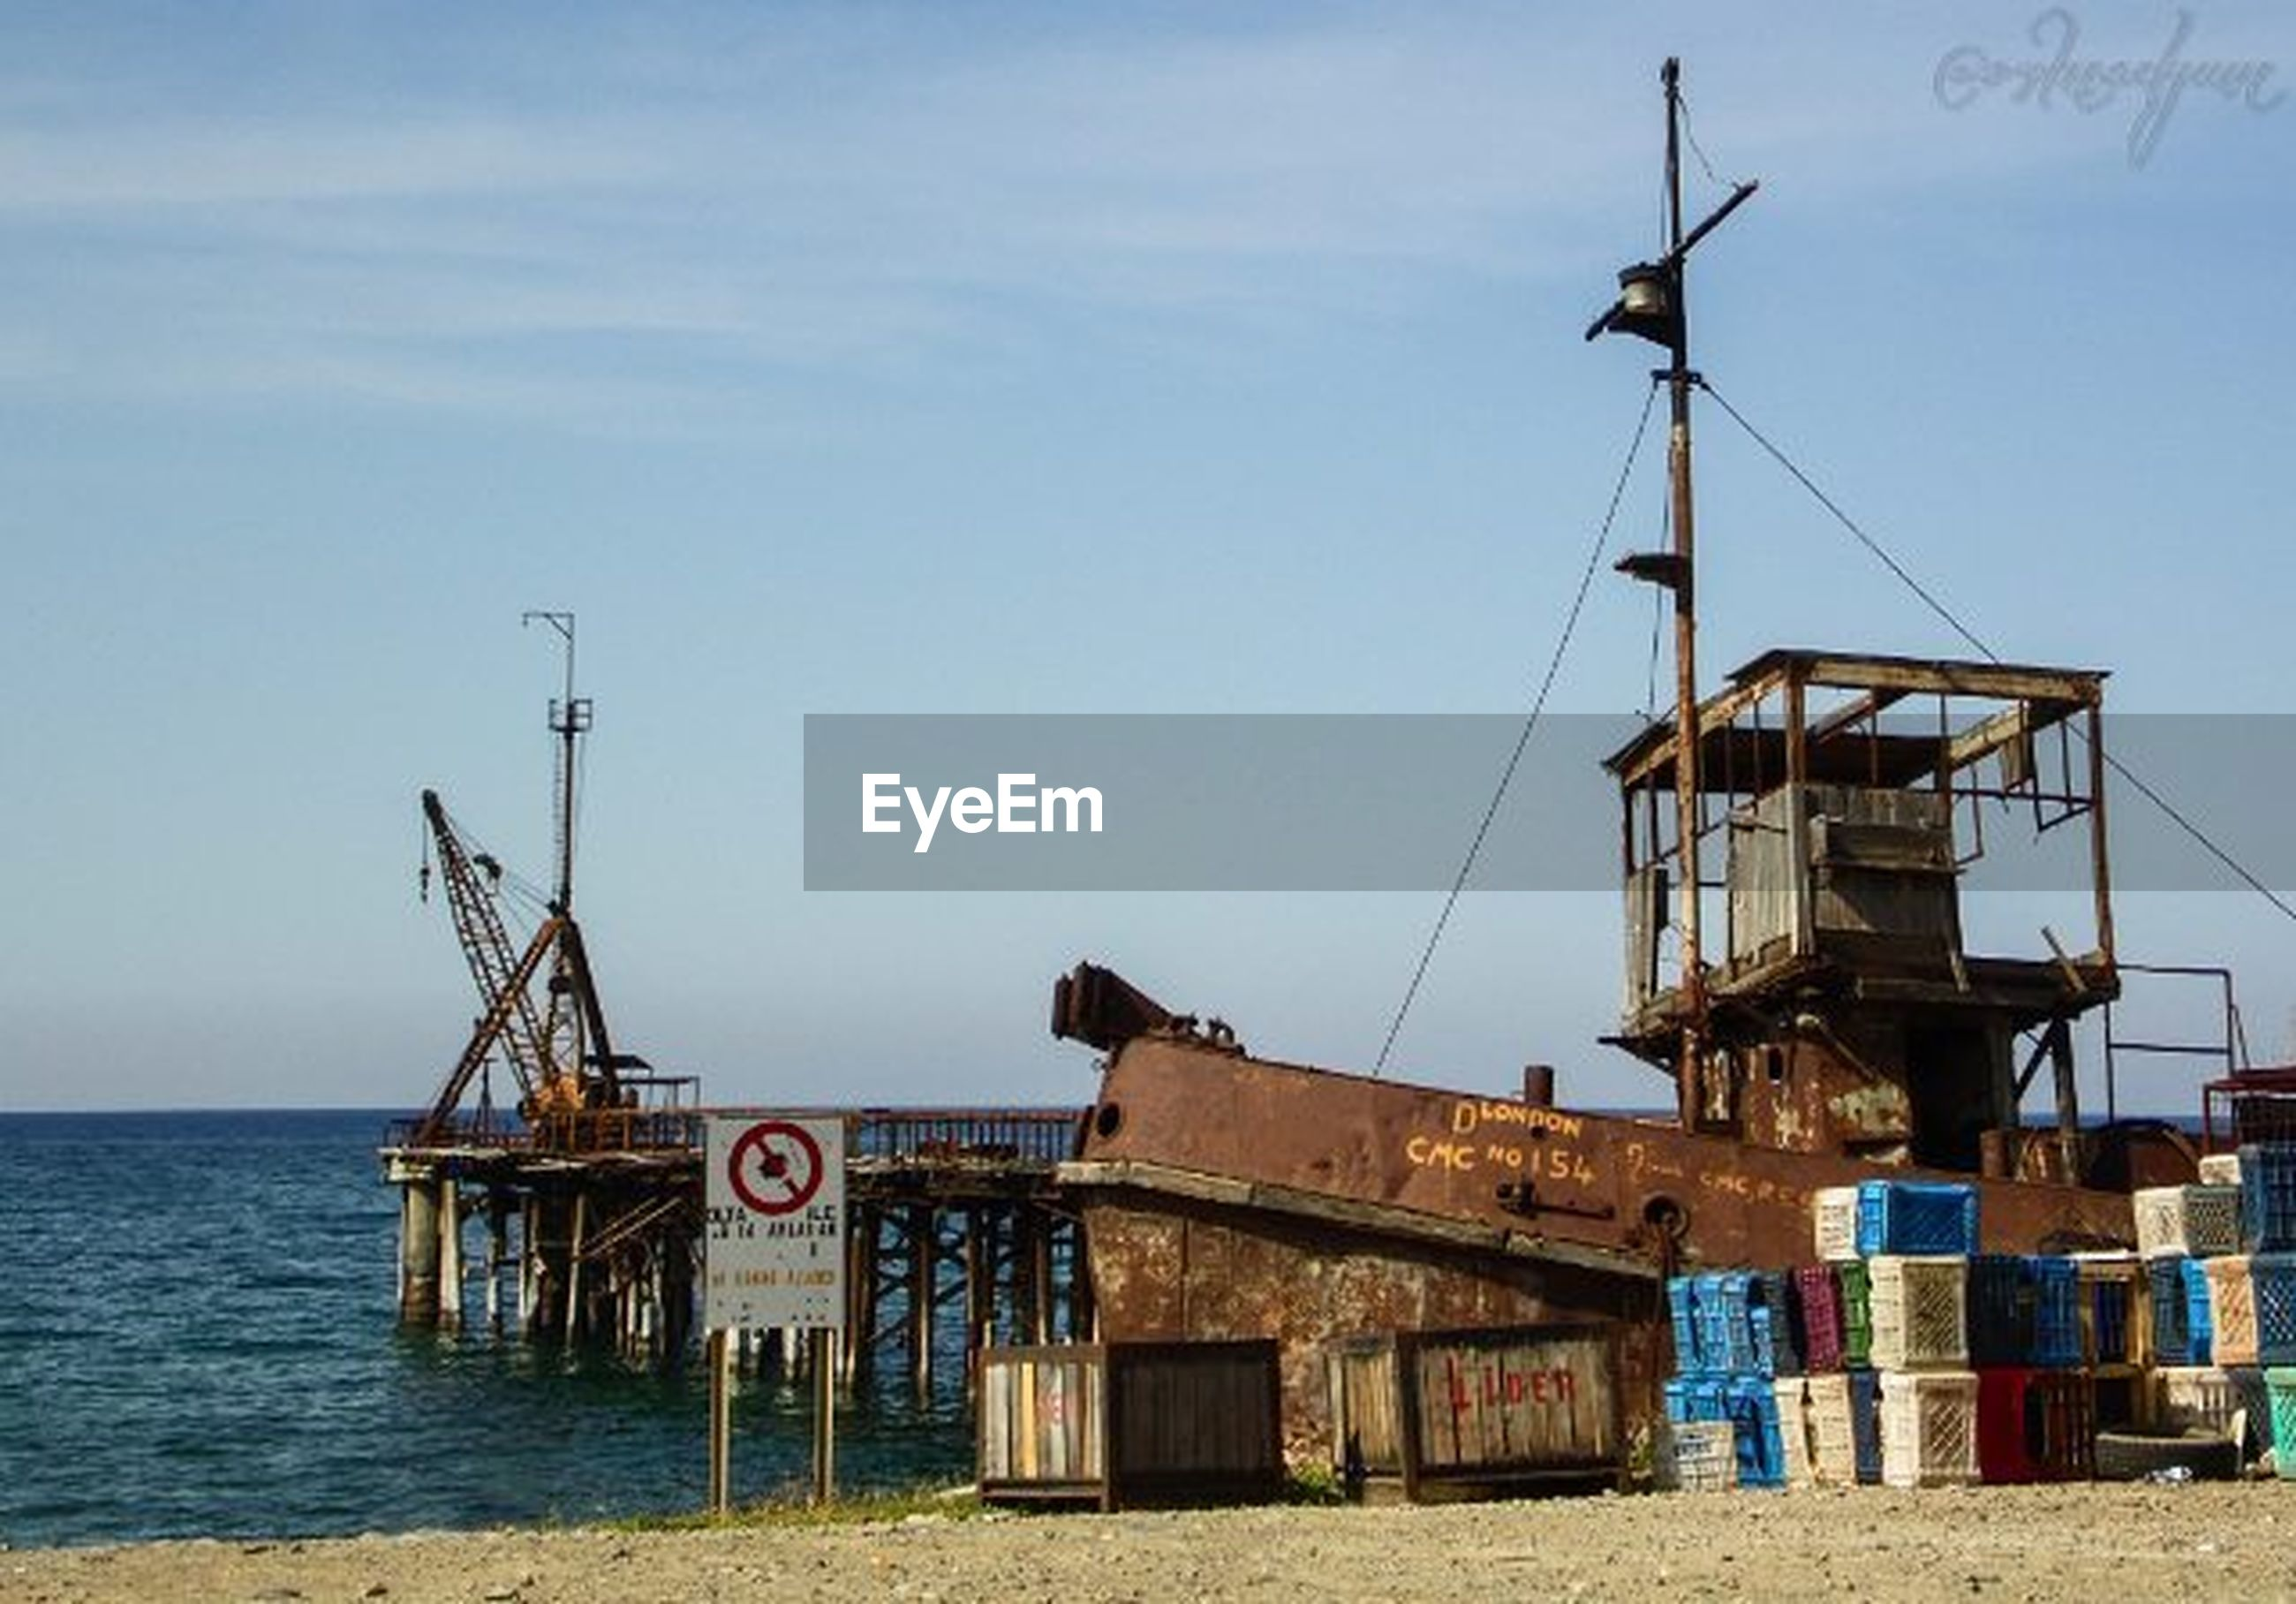 water, sea, sky, built structure, nautical vessel, architecture, building exterior, beach, environmental conservation, fuel and power generation, day, alternative energy, commercial dock, windmill, clear sky, outdoors, nature, moored, horizon over water, wind power